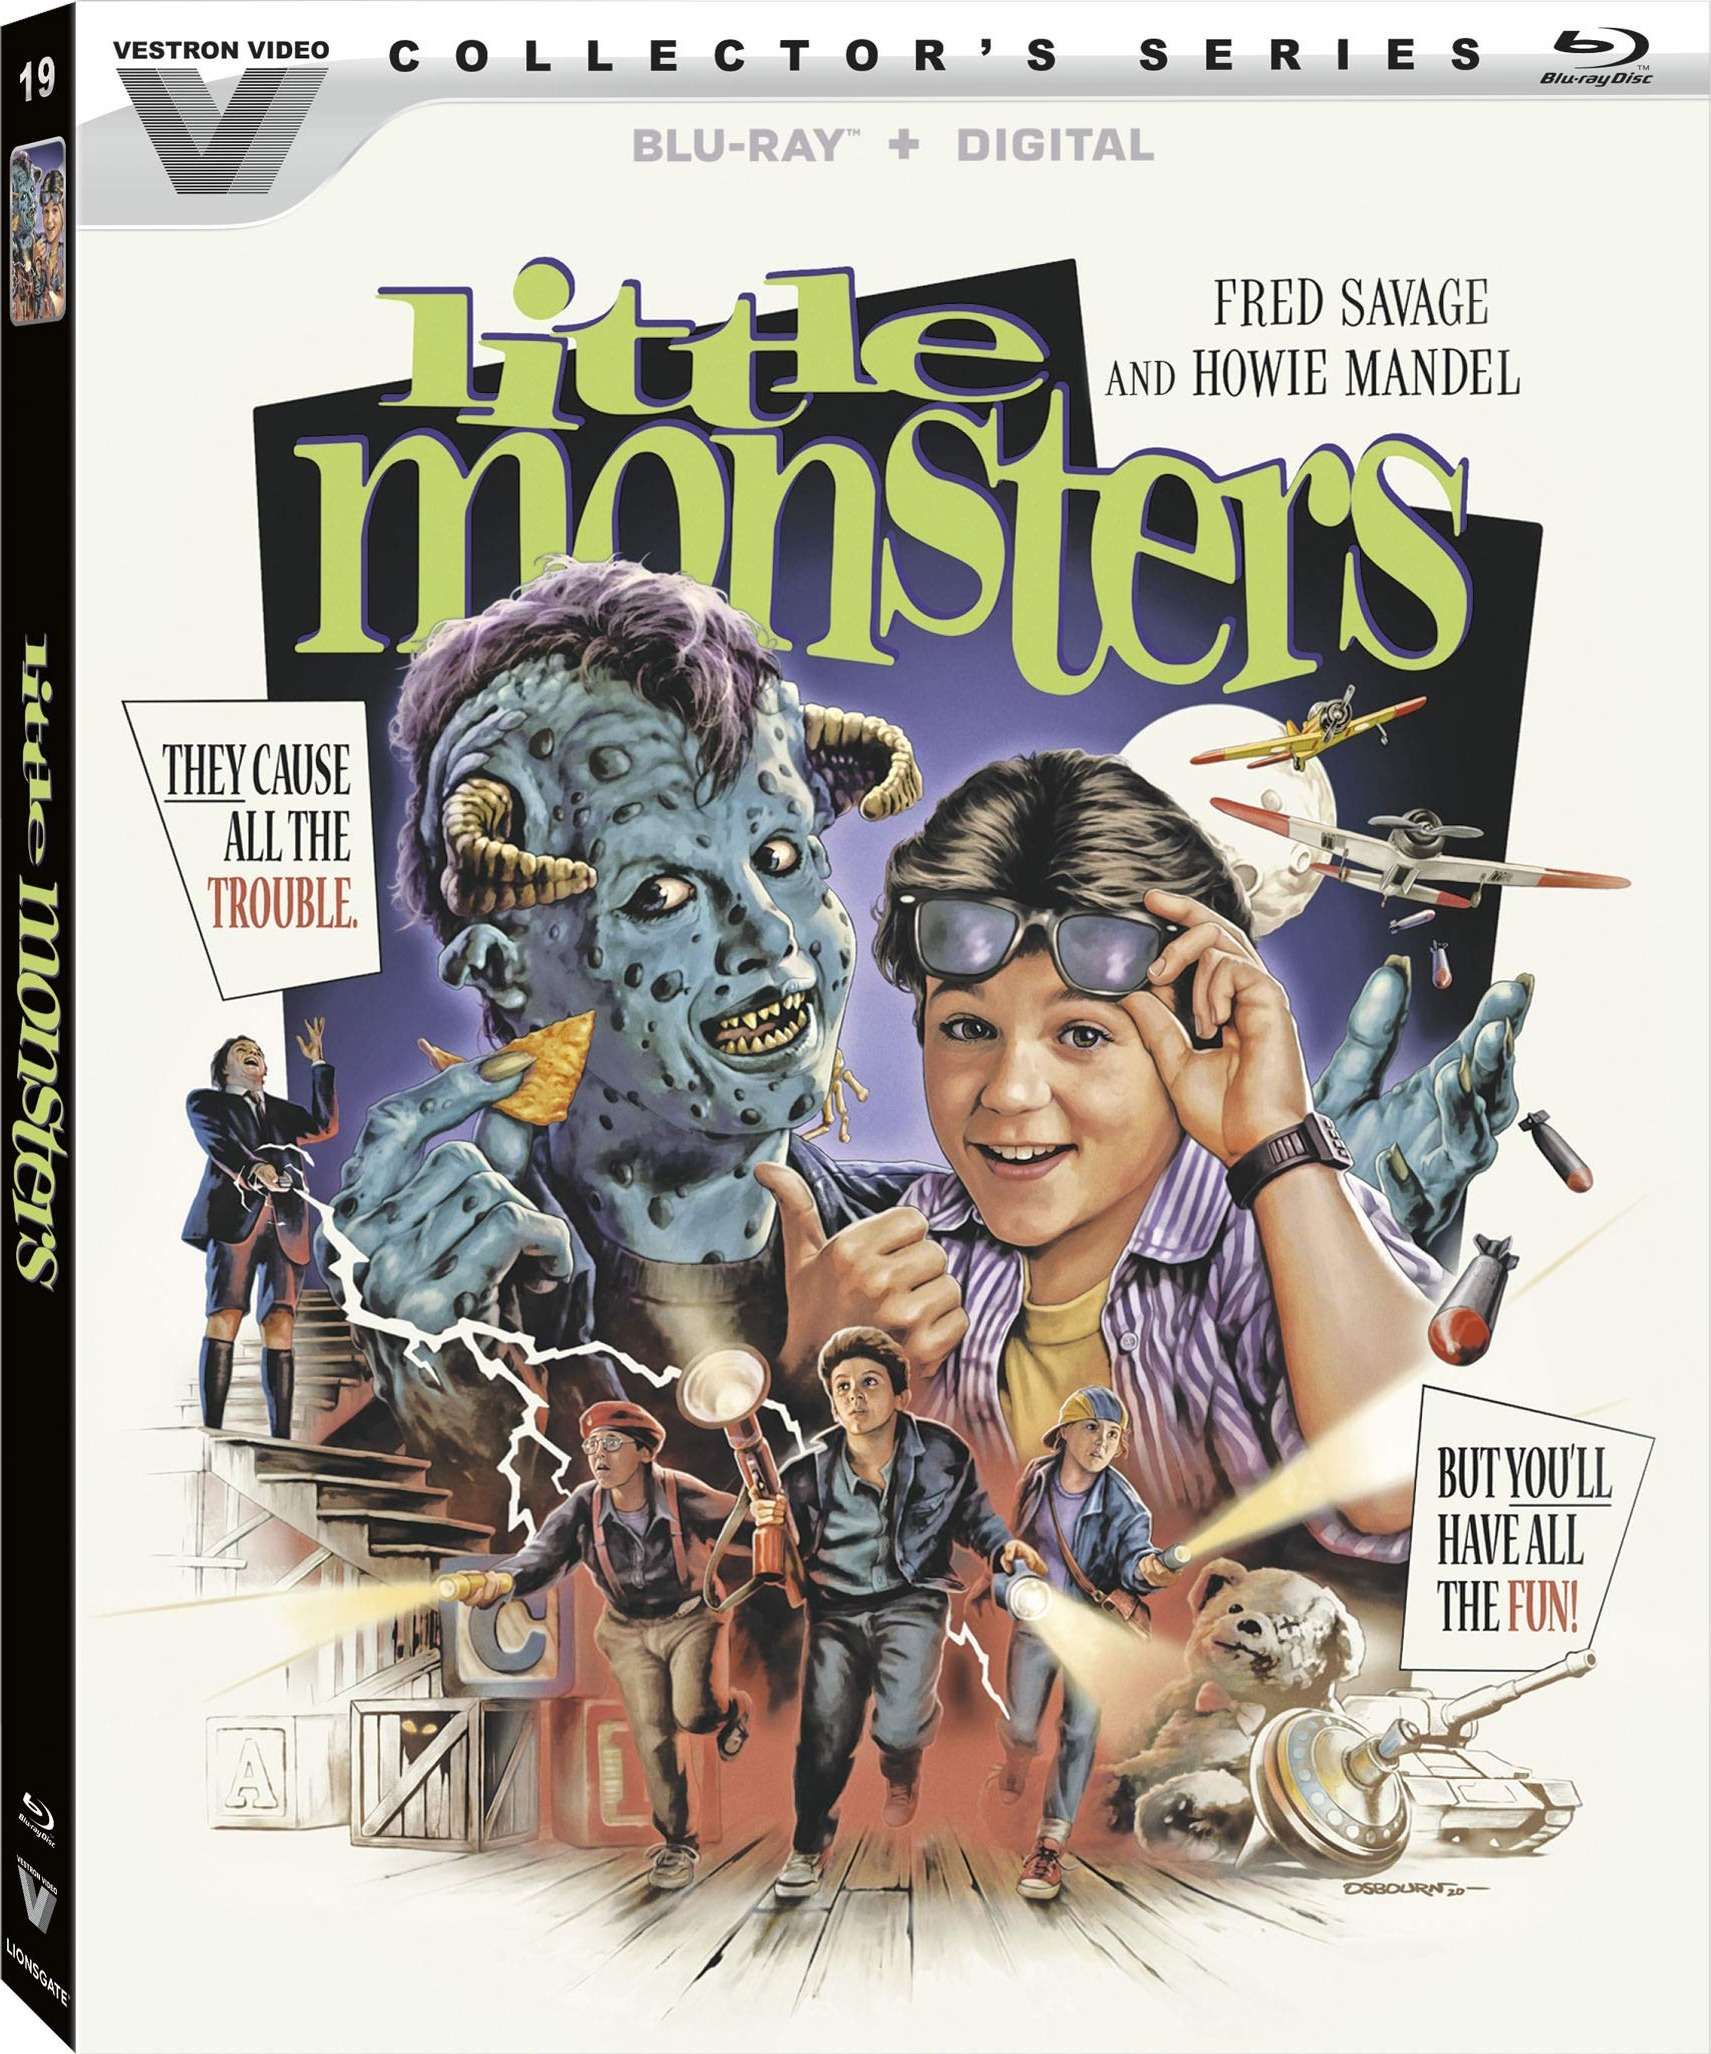 Little Monsters Blu-ray Review (Vestron Video)